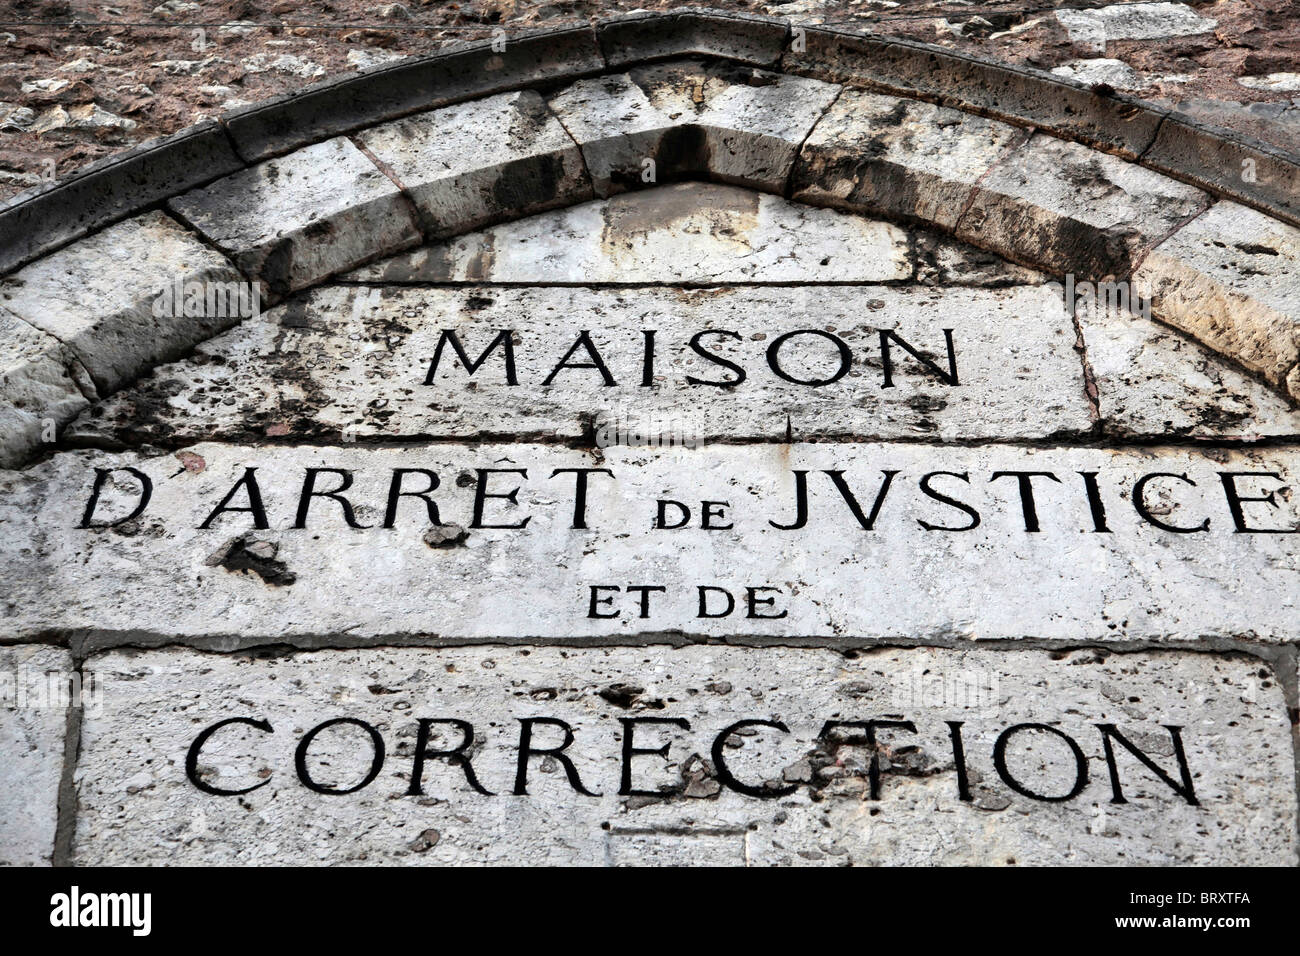 FACADE OF THE PRISON AND REFORMATORY, CHARTRES ,EURE-ET-LOIR (28), FRANCE - Stock Image